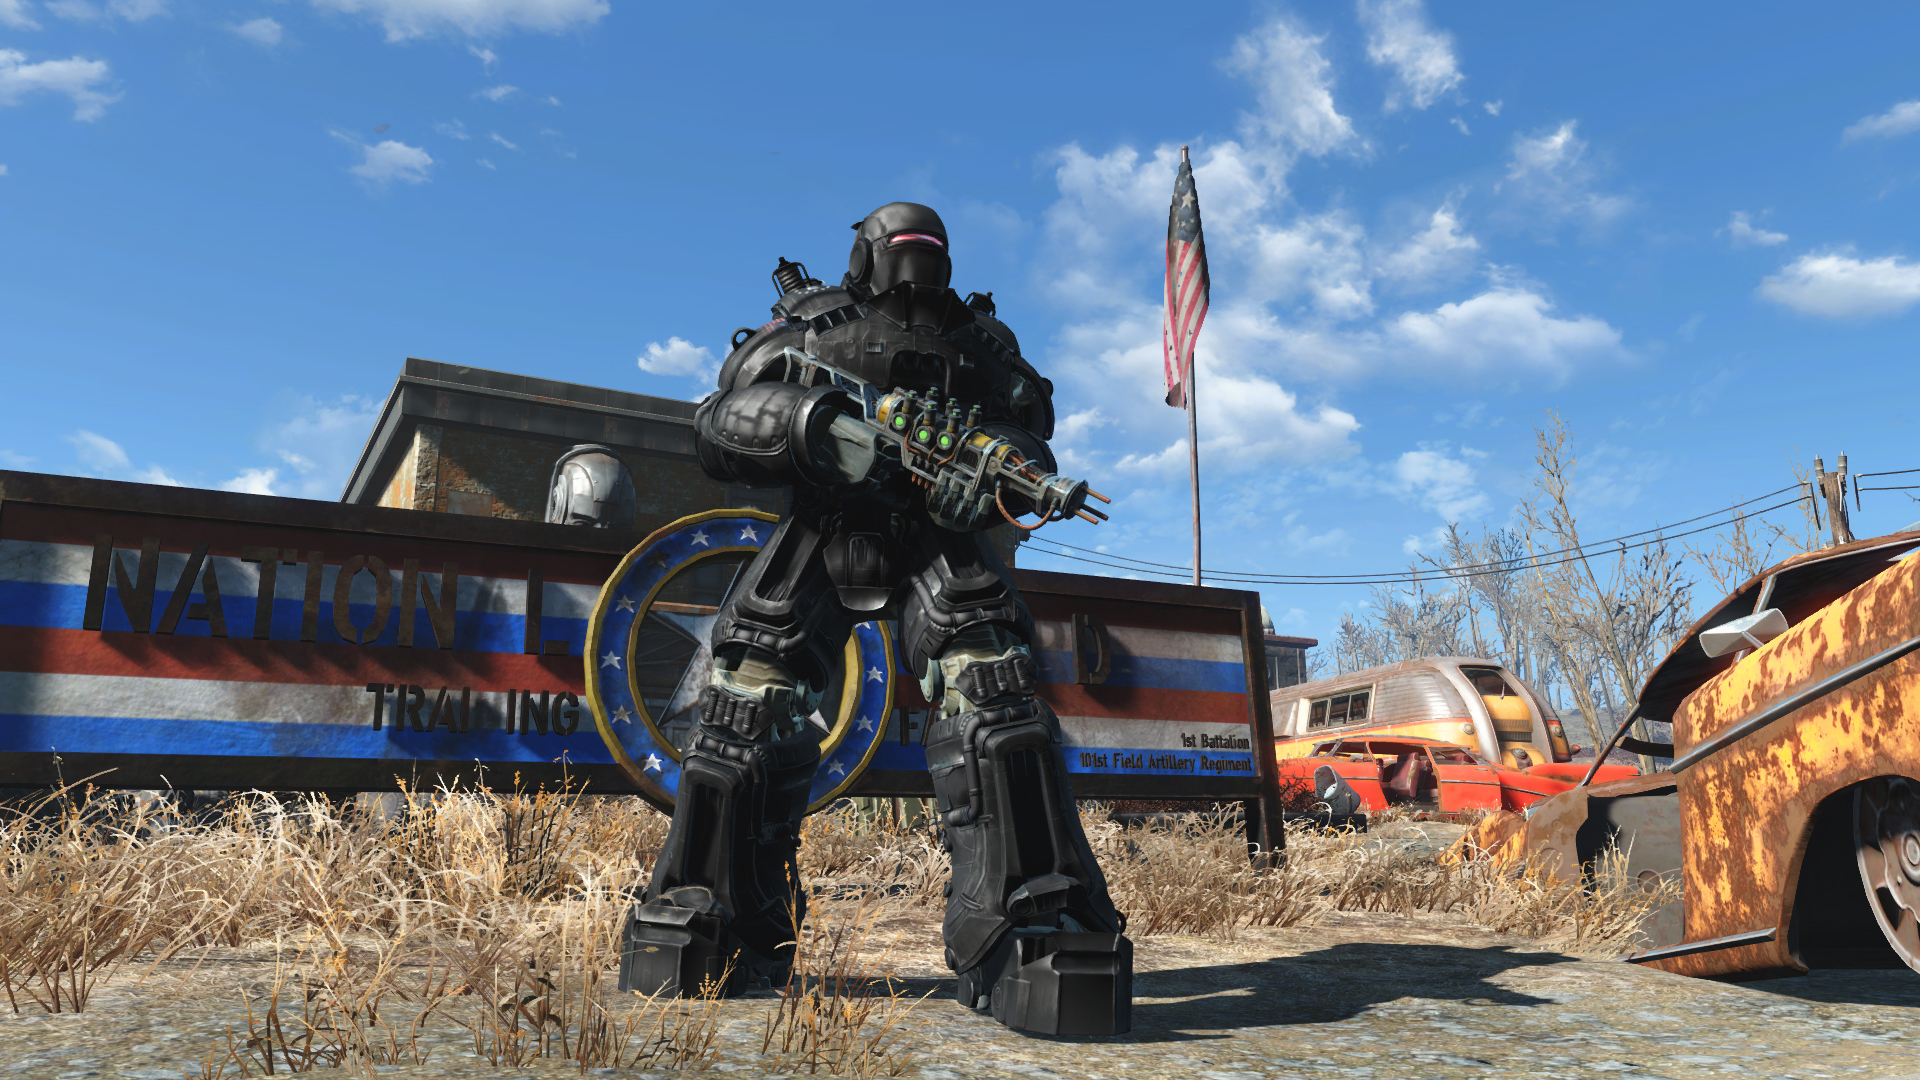 Image result for Liberty Power Armor fallout 4 mods